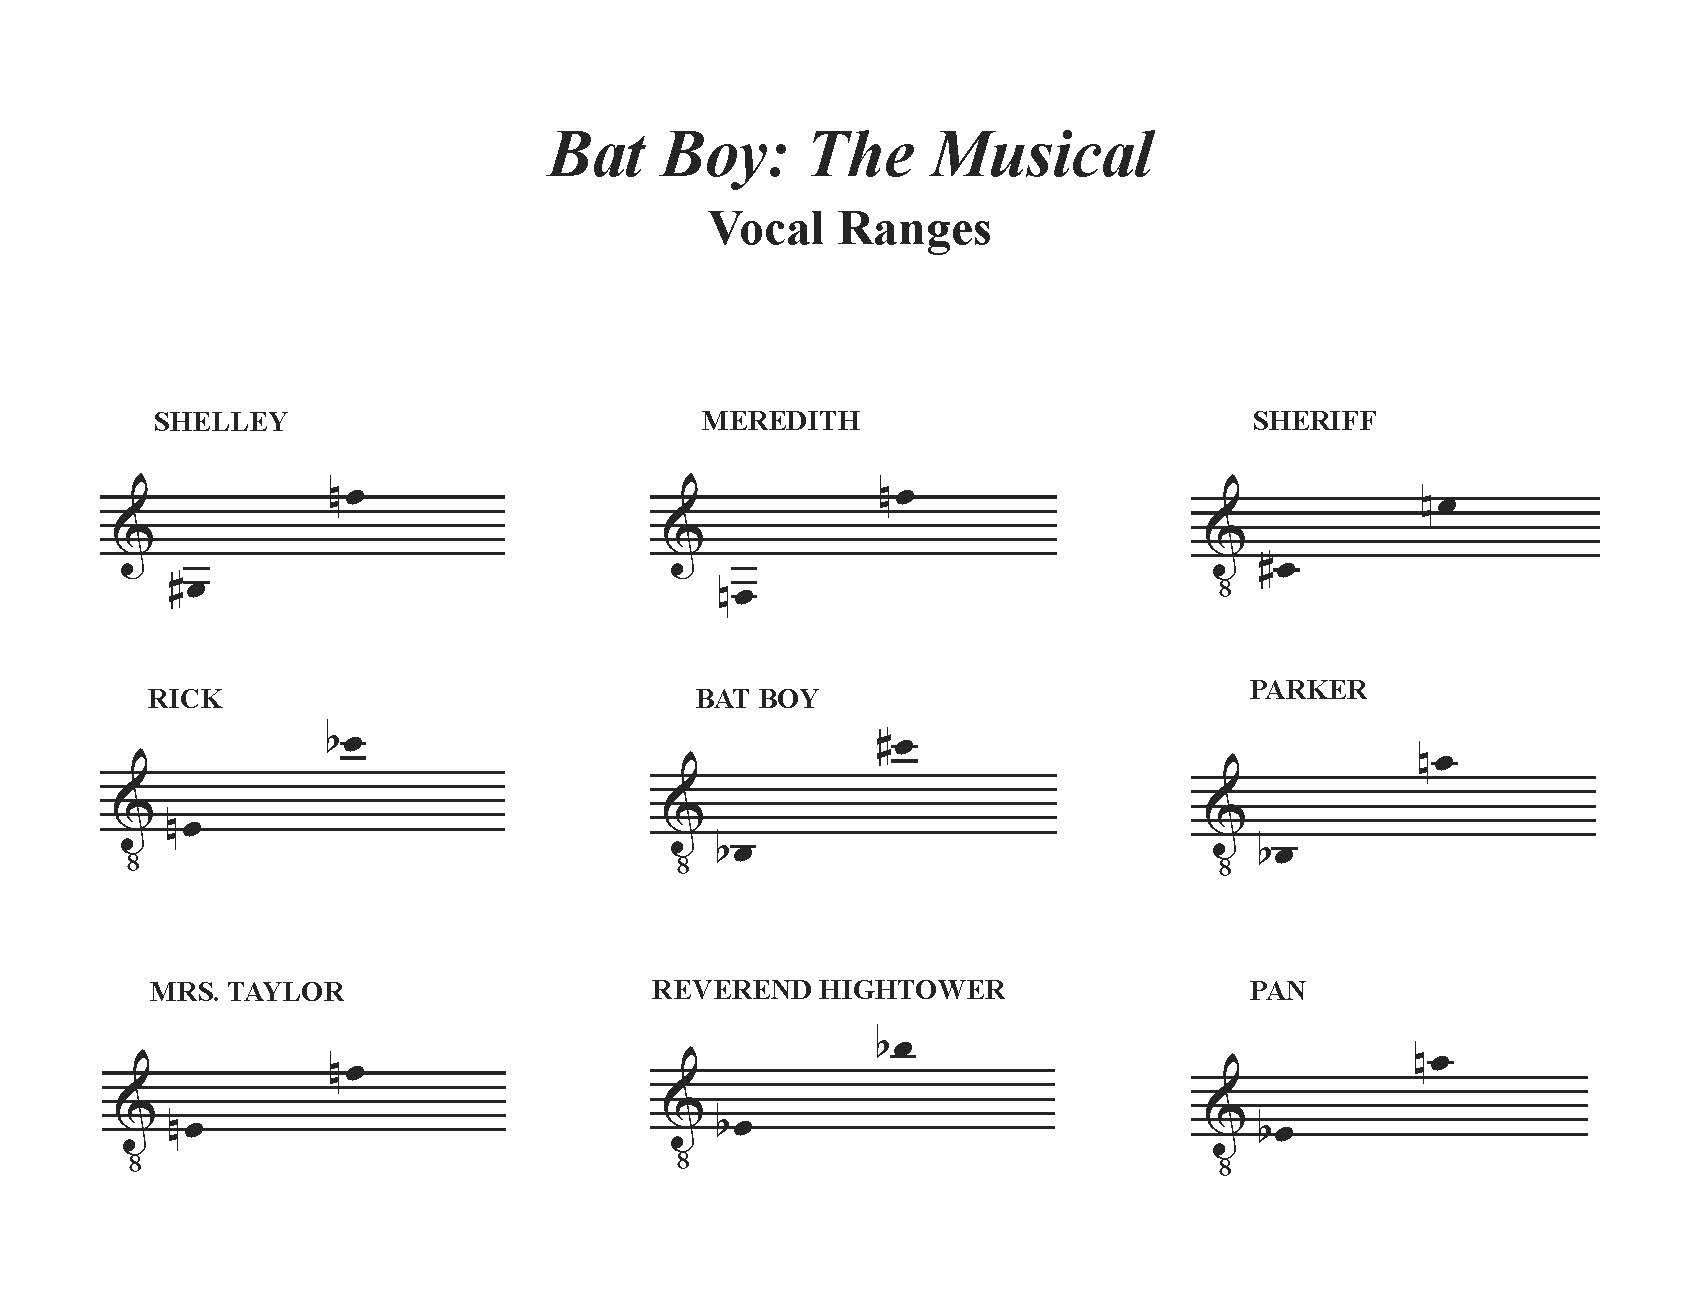 Bat Boy: The Musical Vocal Ranges